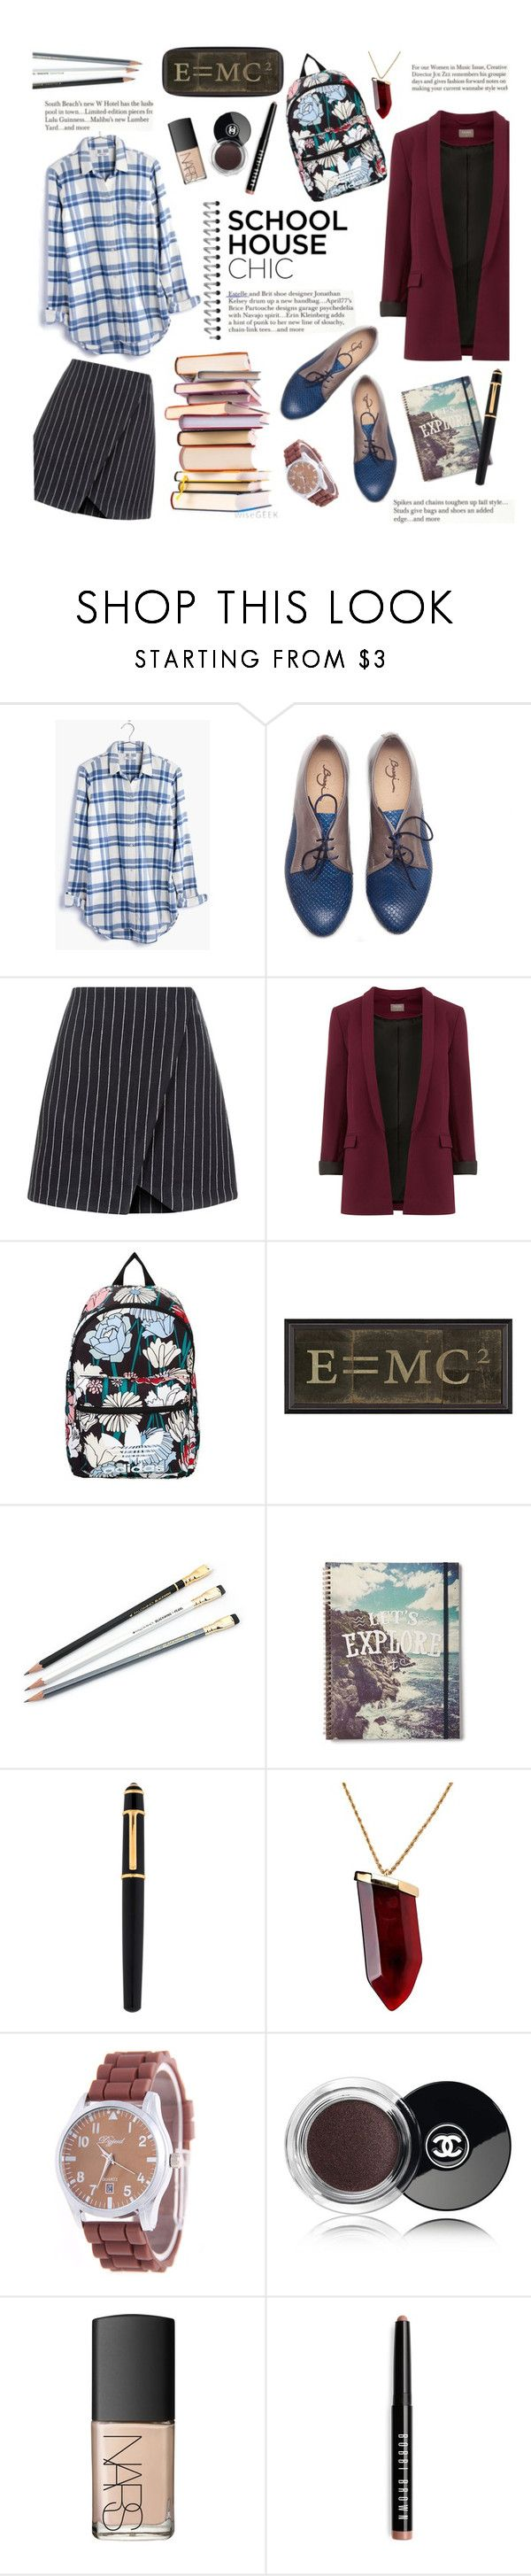 """""""School house chic"""" by buttercup-on-fire ❤ liked on Polyvore featuring Madewell, New Look, adidas Originals, MC2, Cartier, Kenneth Jay Lane, Chanel, NARS Cosmetics and Bobbi Brown Cosmetics"""